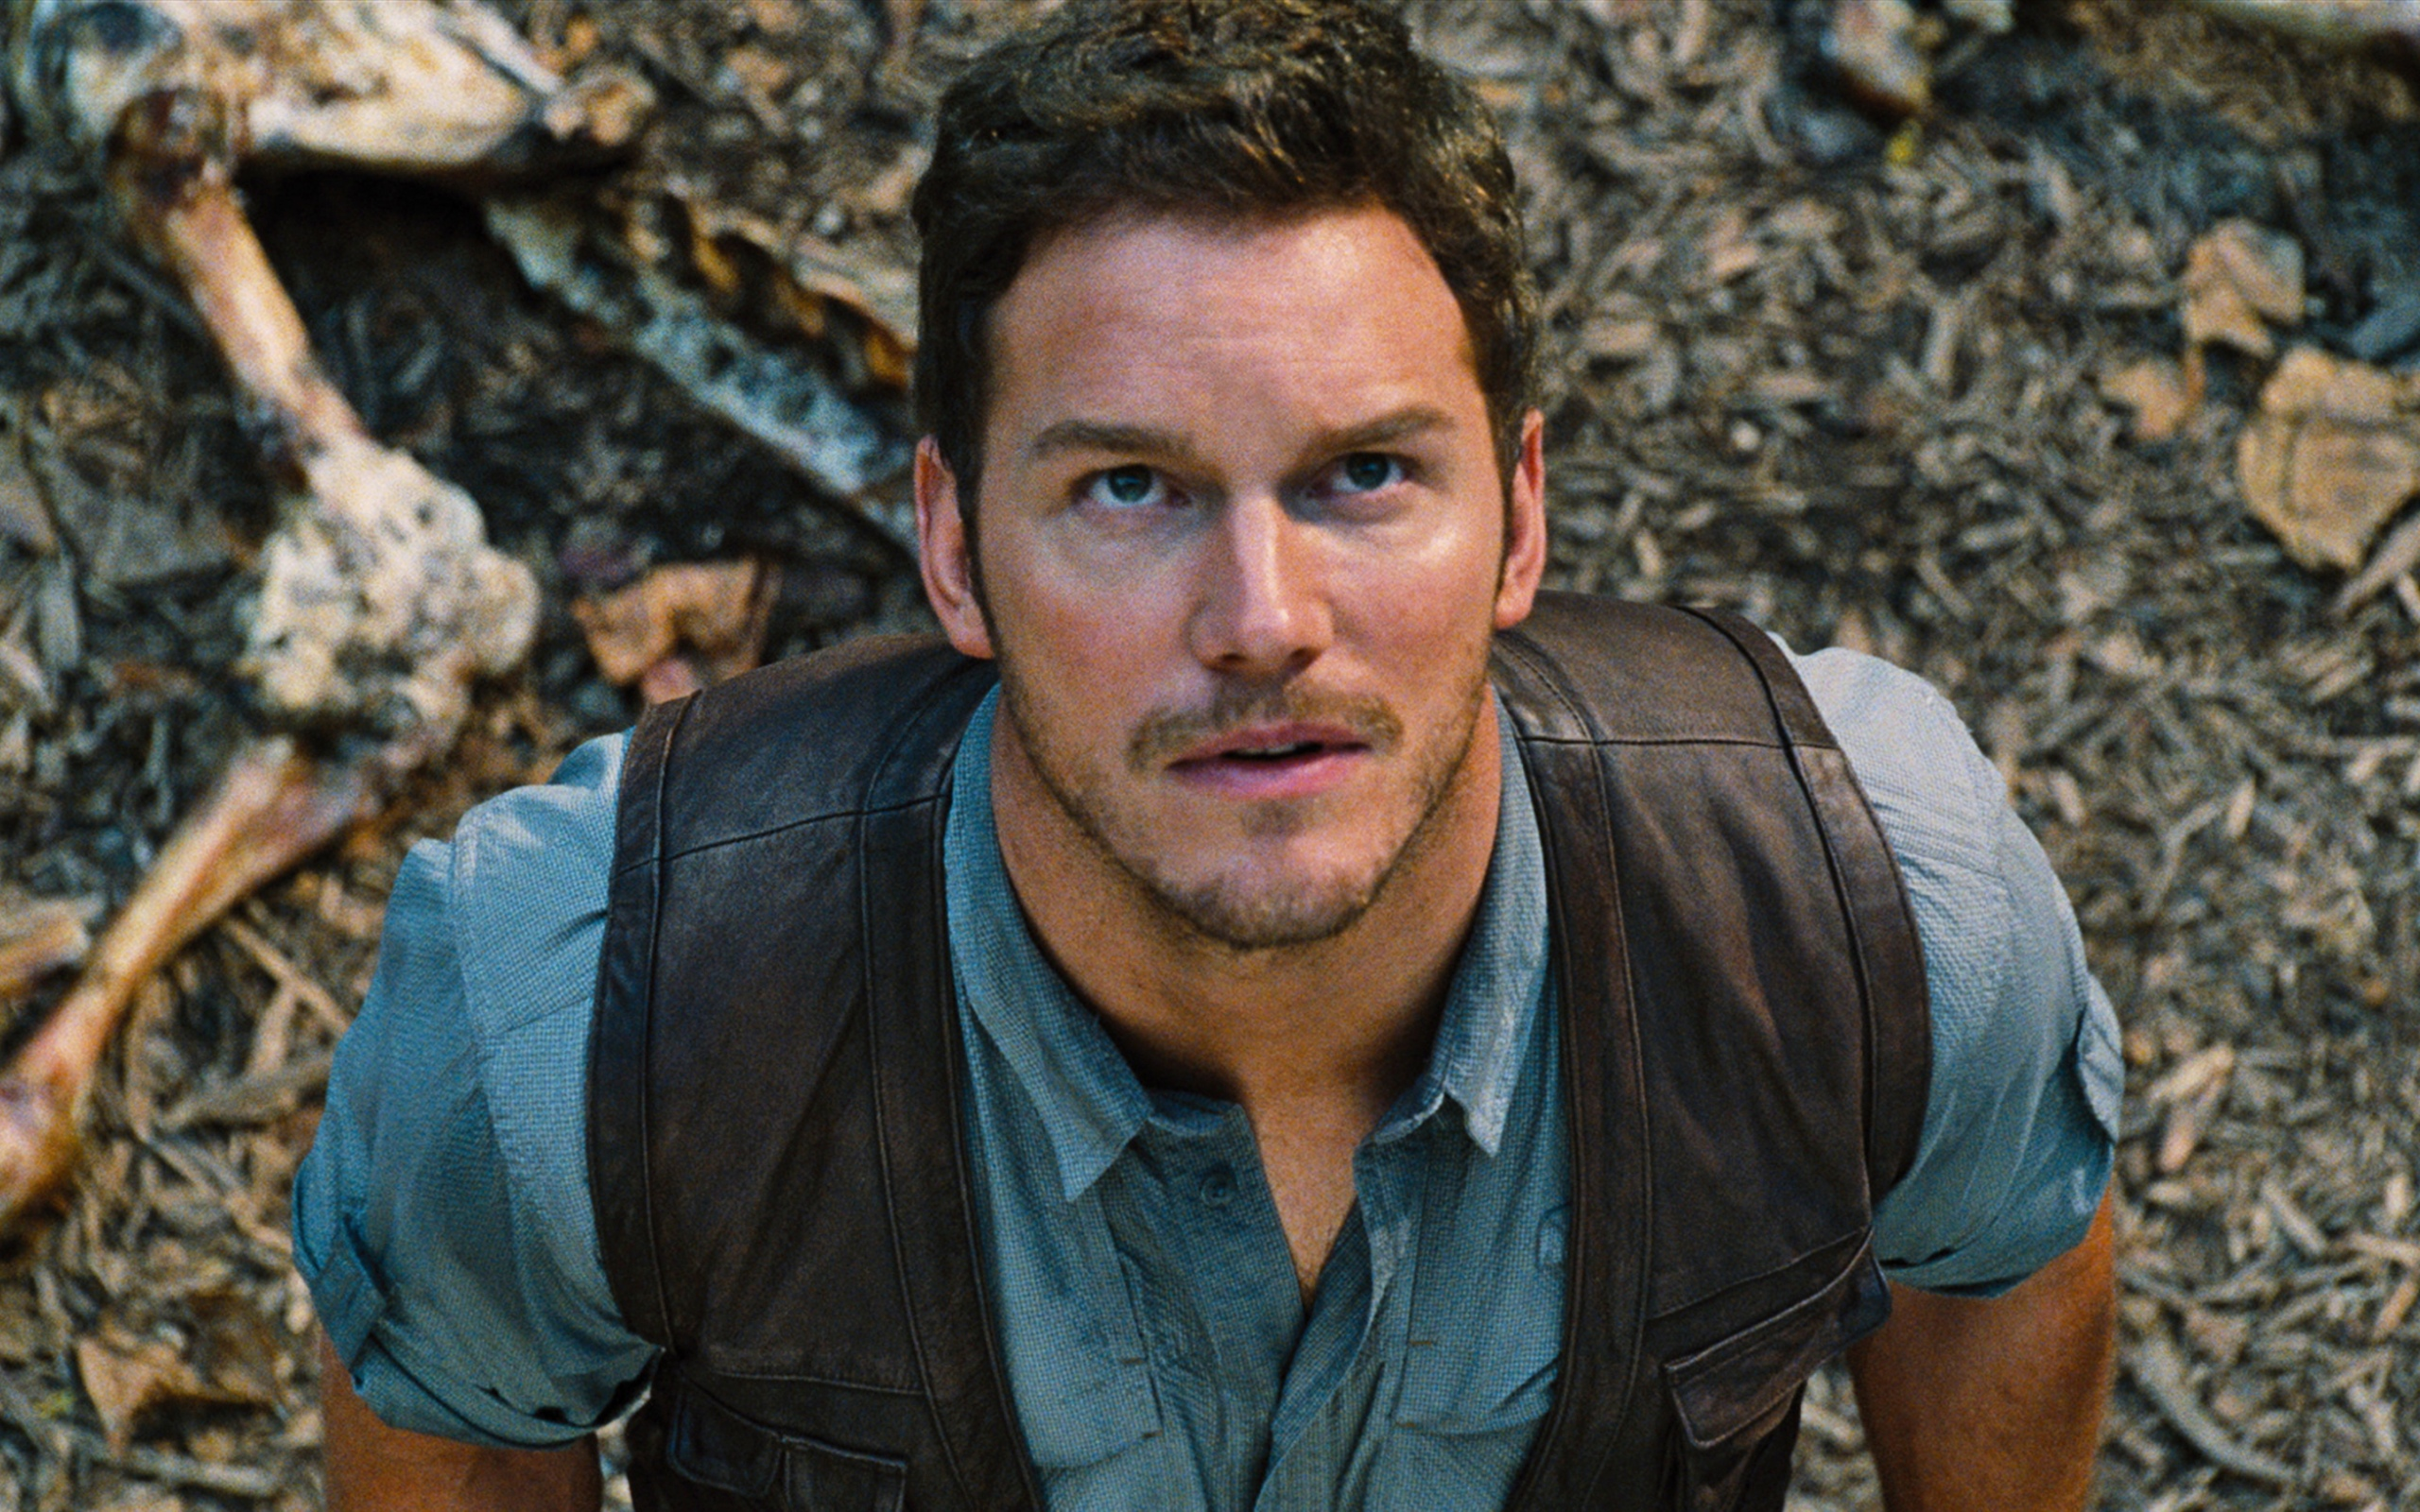 Jurassic_world_Cinema_-_2560x1600.jpg